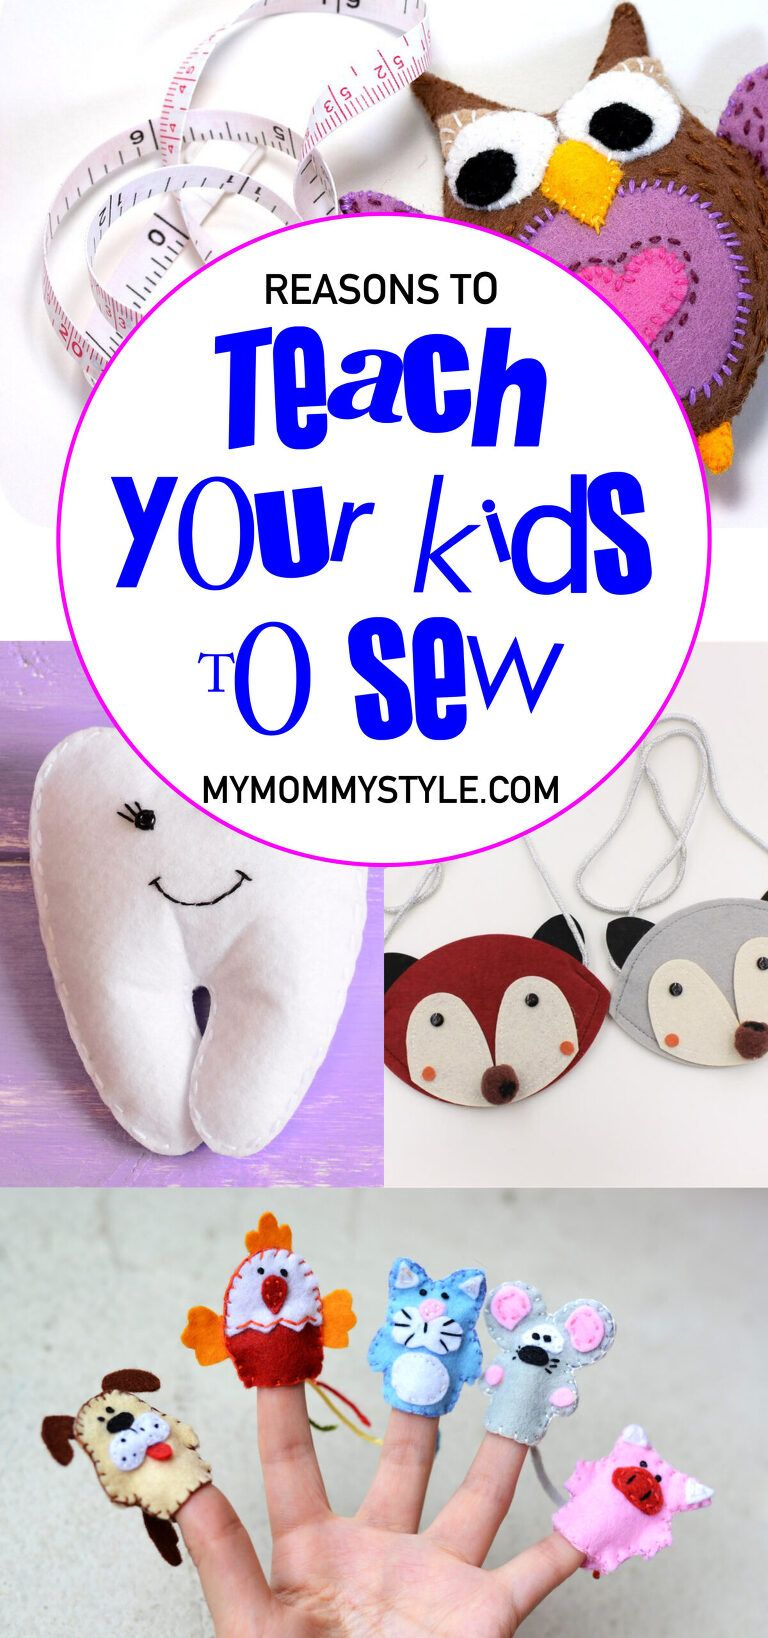 My Mommy Style - Activities for Kids - Children's Sewing Ideas